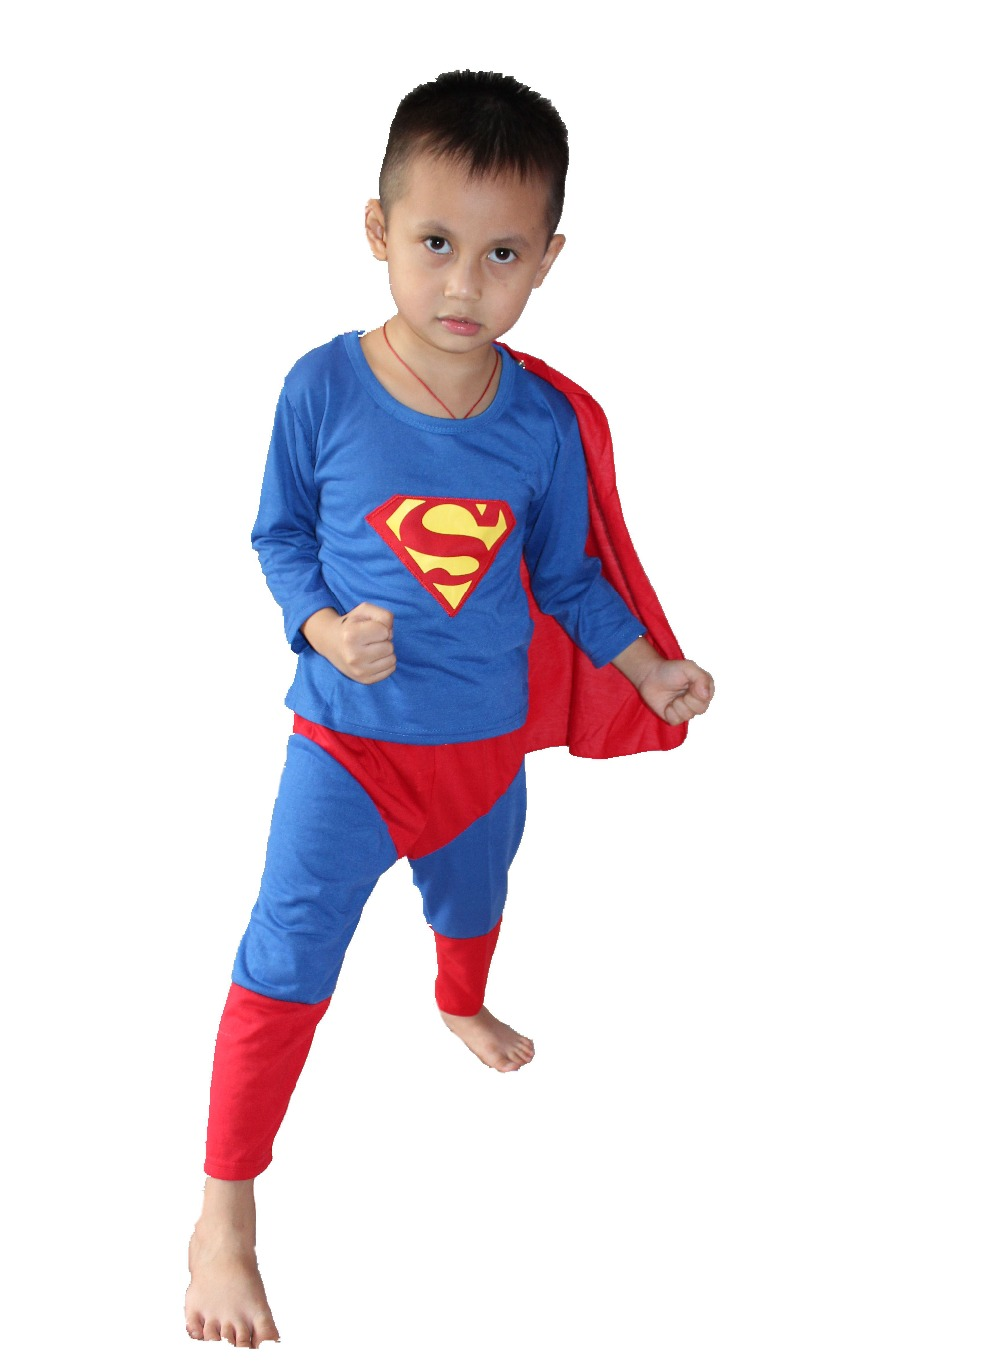 Einzelhandel - Halloween Party Kostüme Hallowmas 3 - 7 Jahre Kind Superman Spielkleidung / Boy Superman Kostüm Cosplay T-Shirt